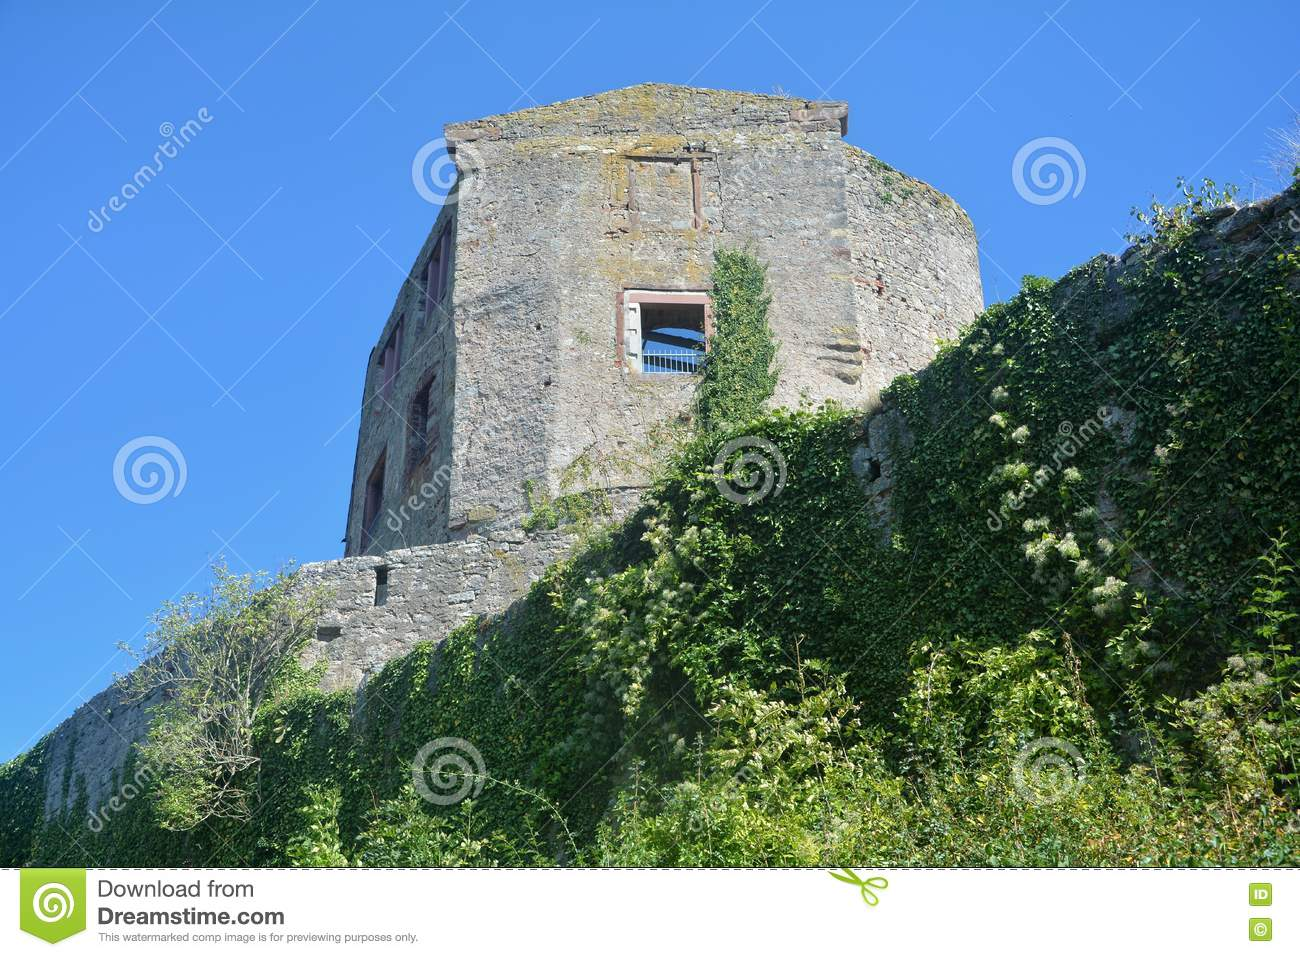 Old castle wall ruins